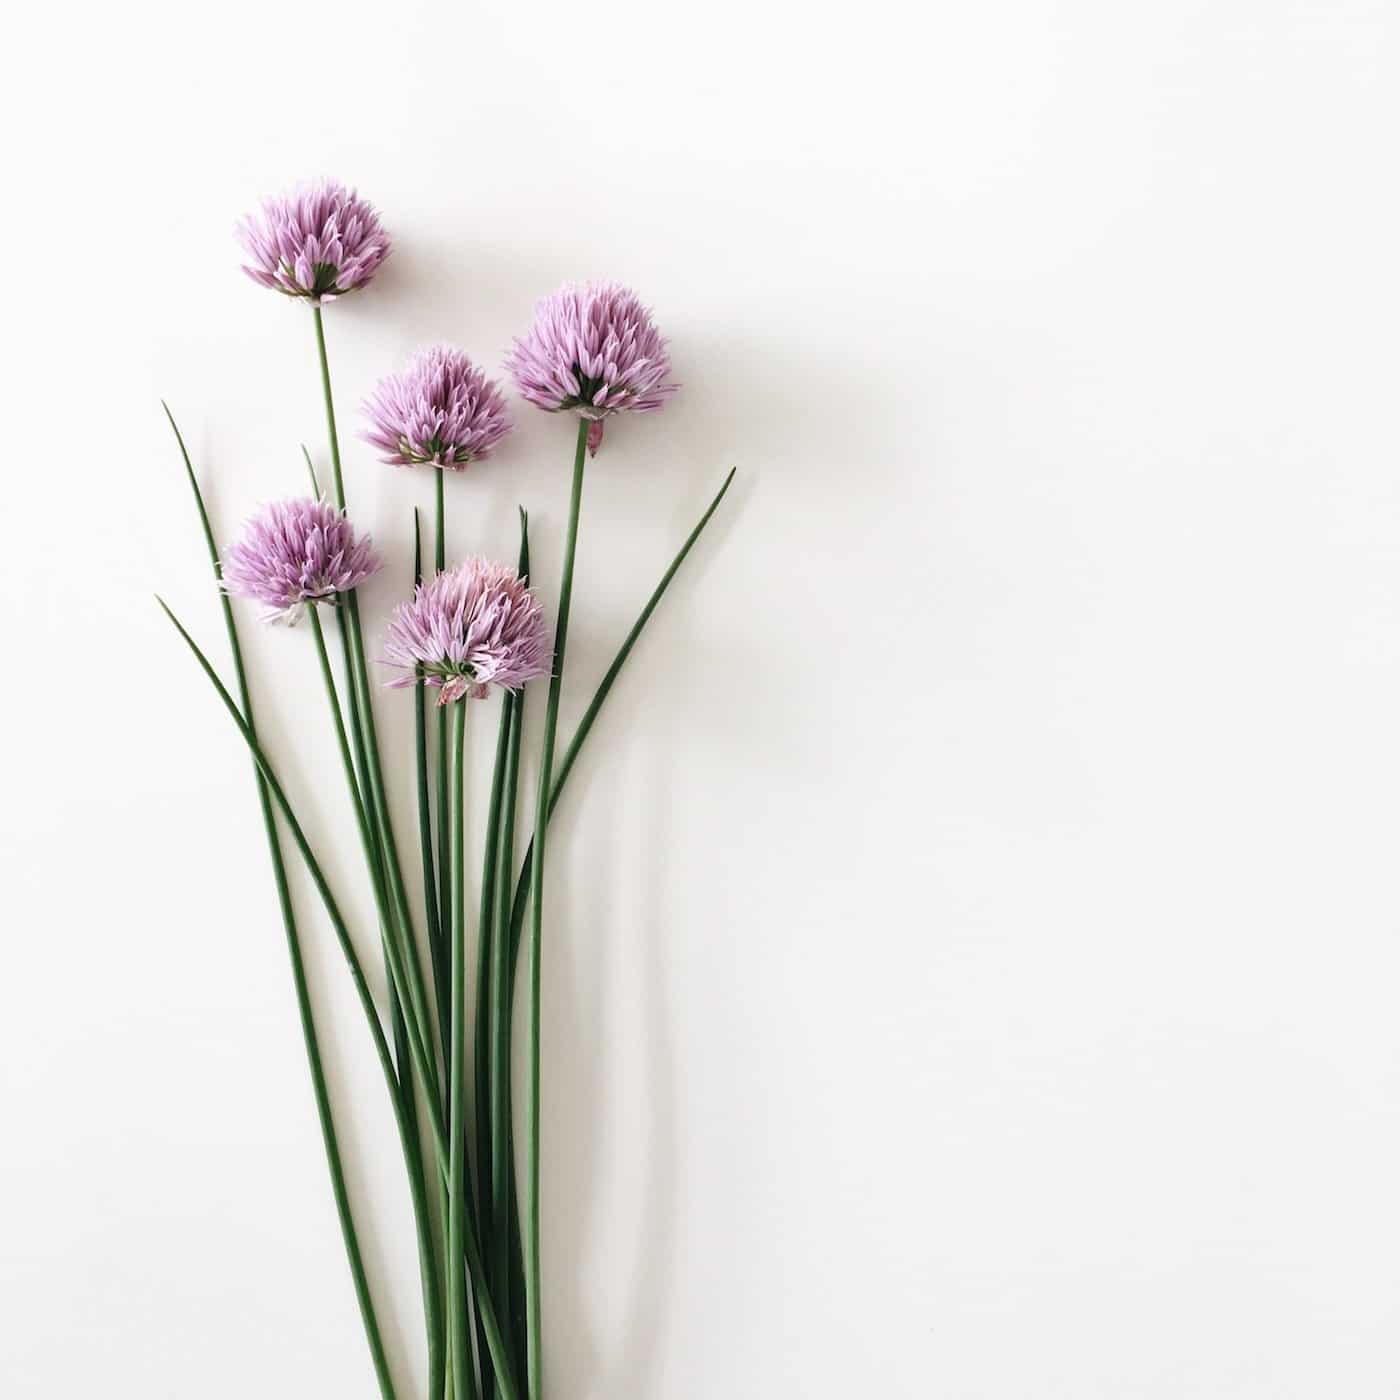 green chives with purple blossoms from an organic garden